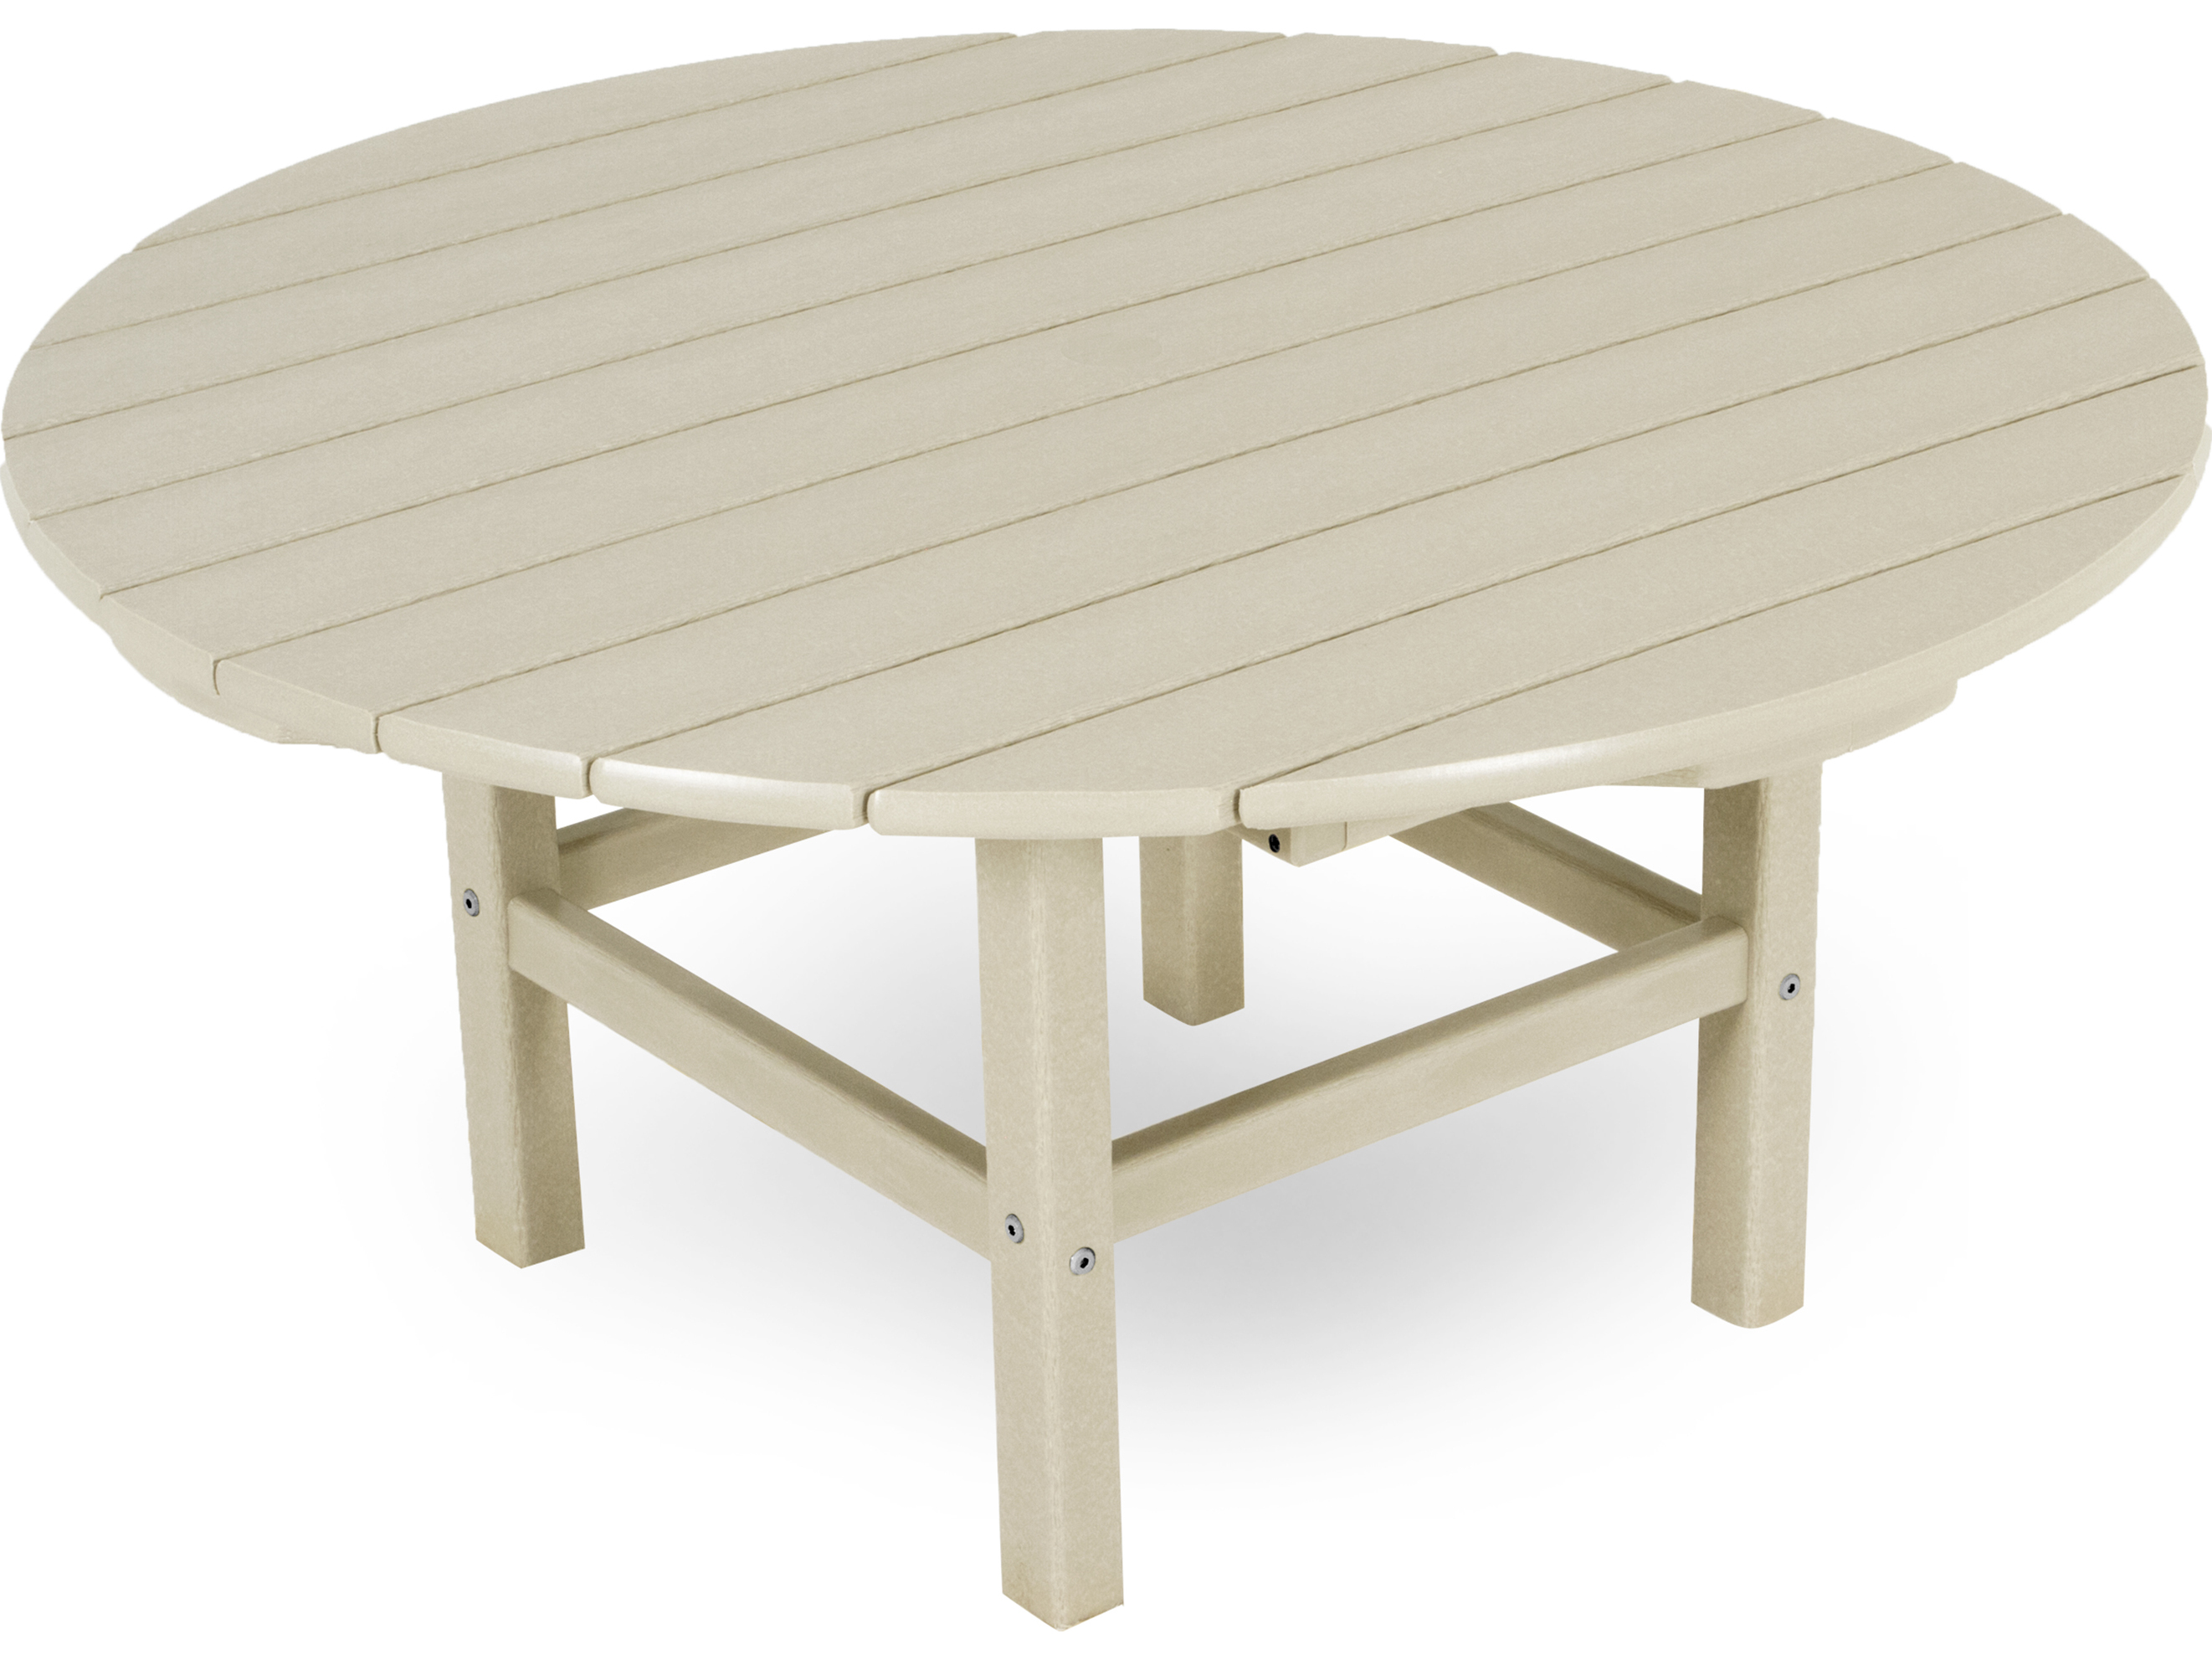 Polywood 174 Traditional Recycled Plastic 38 Wide Round